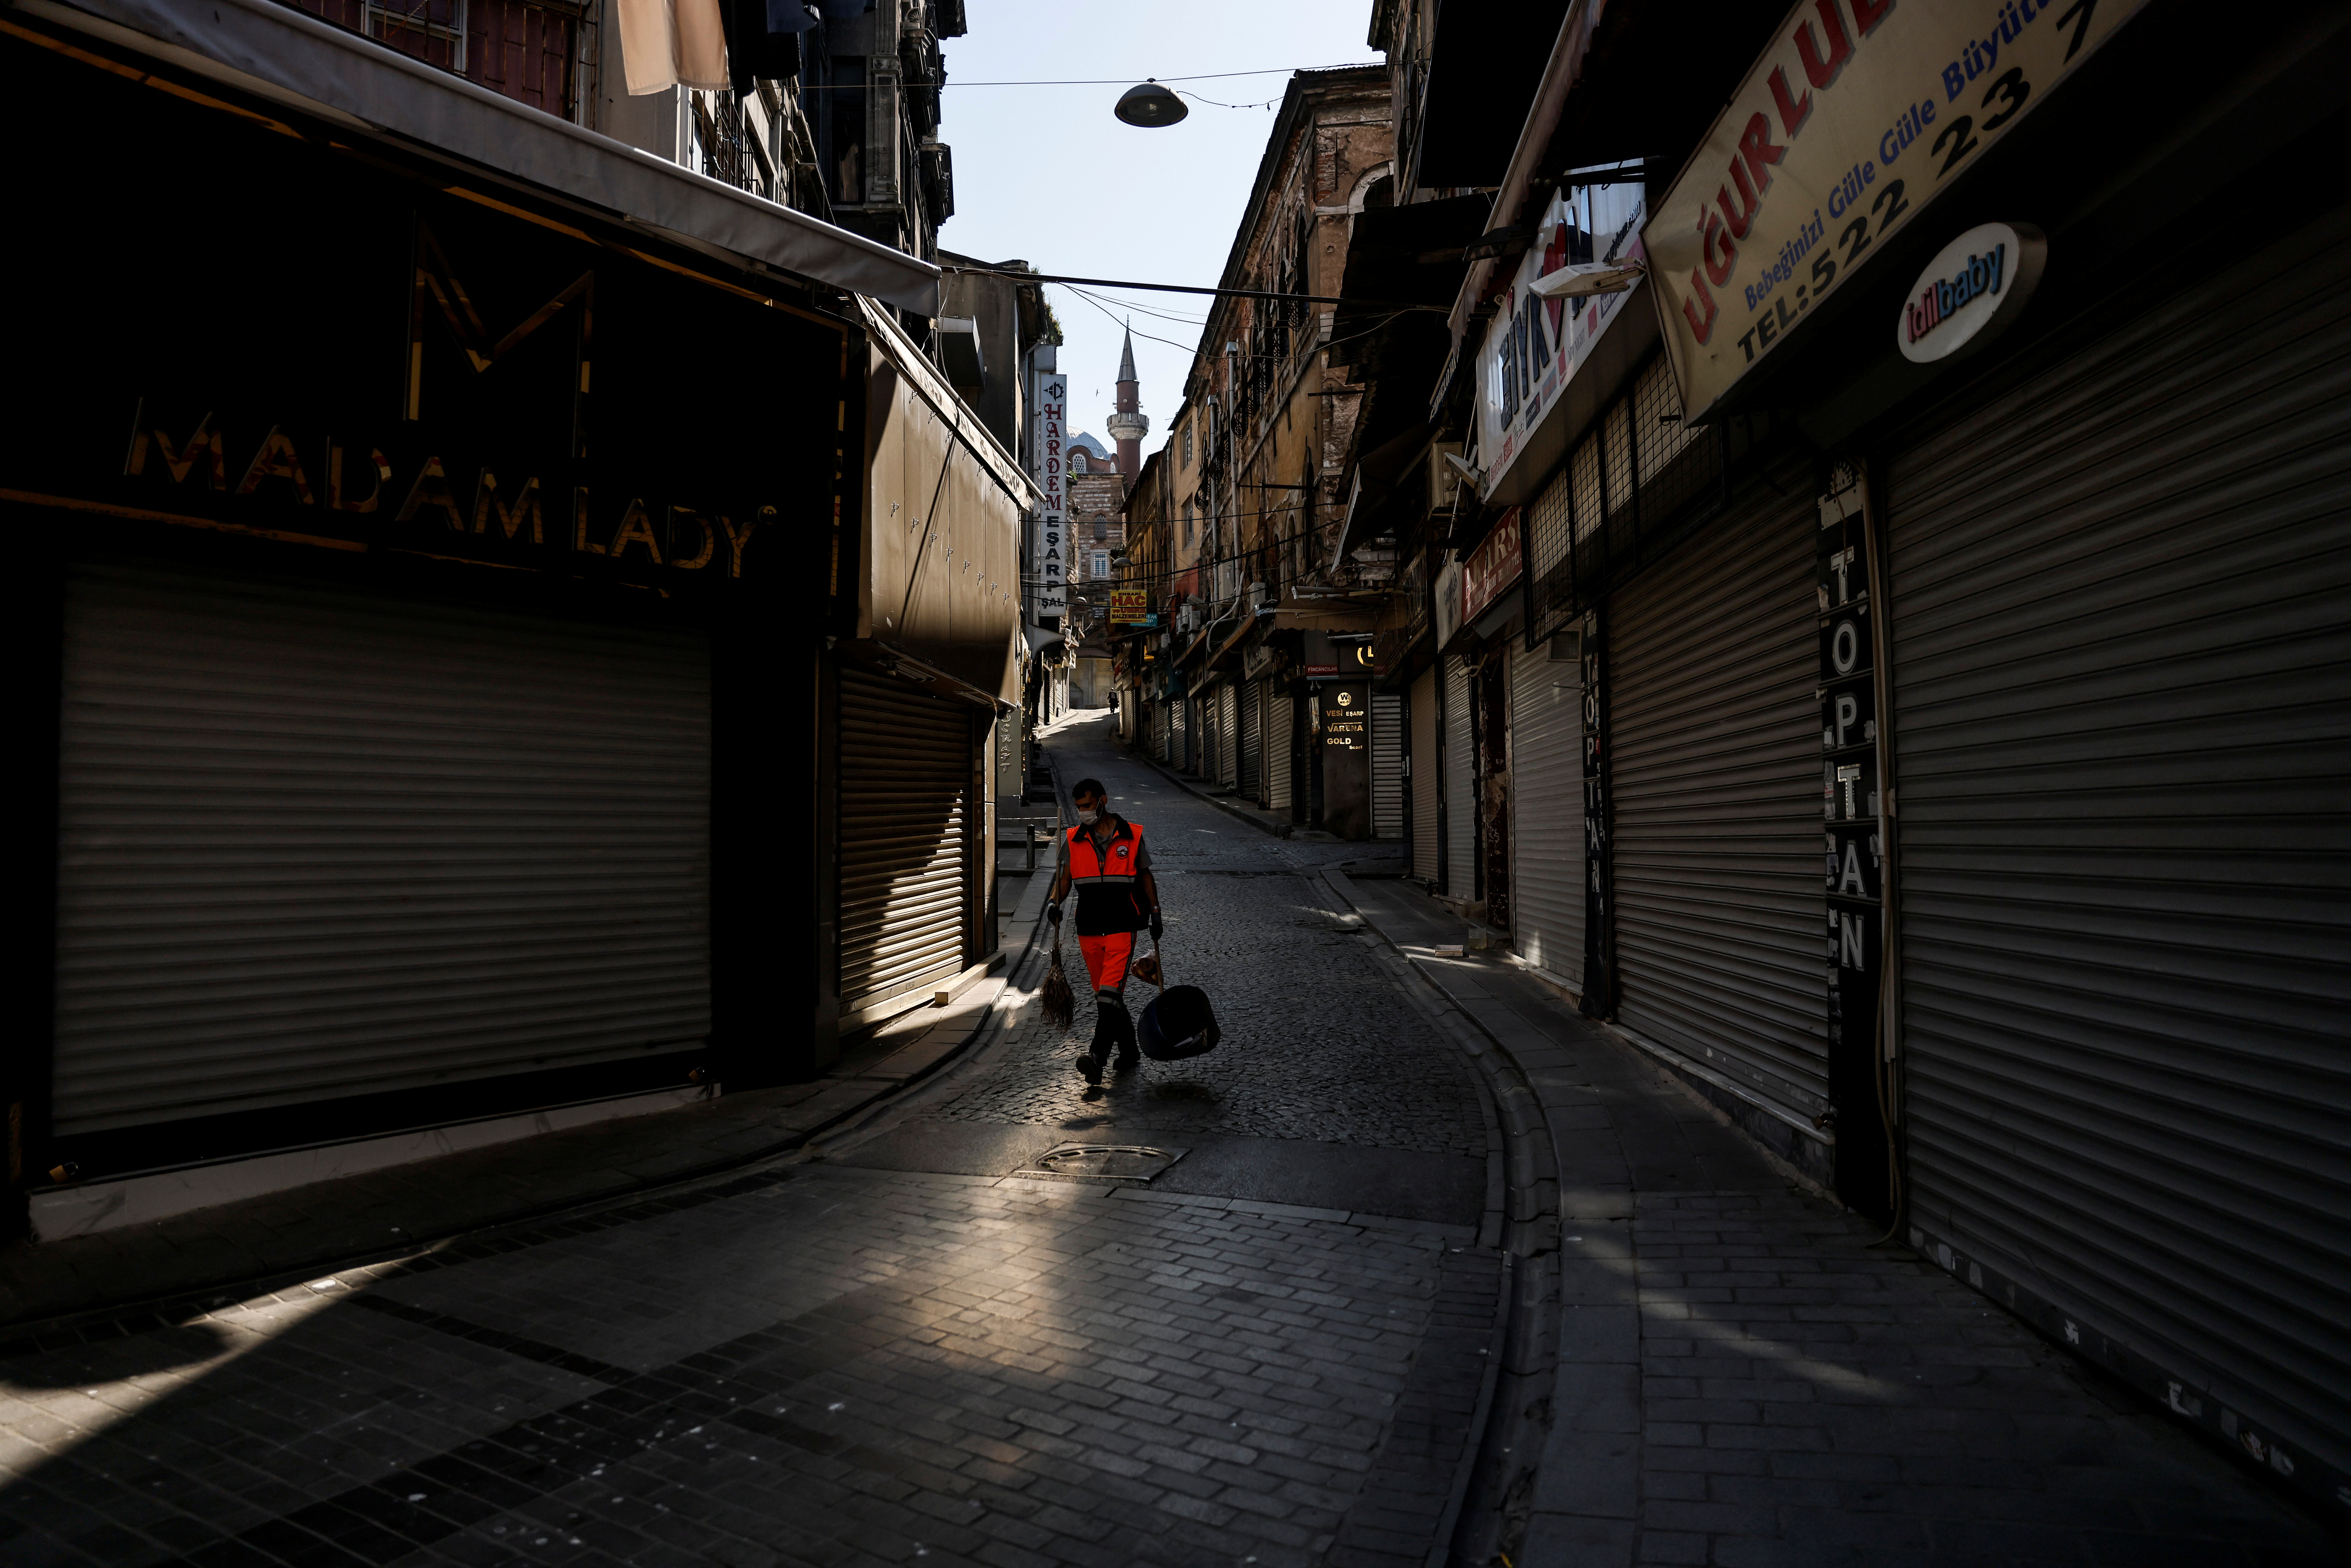 A municipality worker sweeps a street at Eminonu district in Istanbul, Turkey, during a nationwide lockdown imposed to slow the spread of the coronavirus disease (COVID-19), May 5, 2021. REUTERS/Umit Bektas